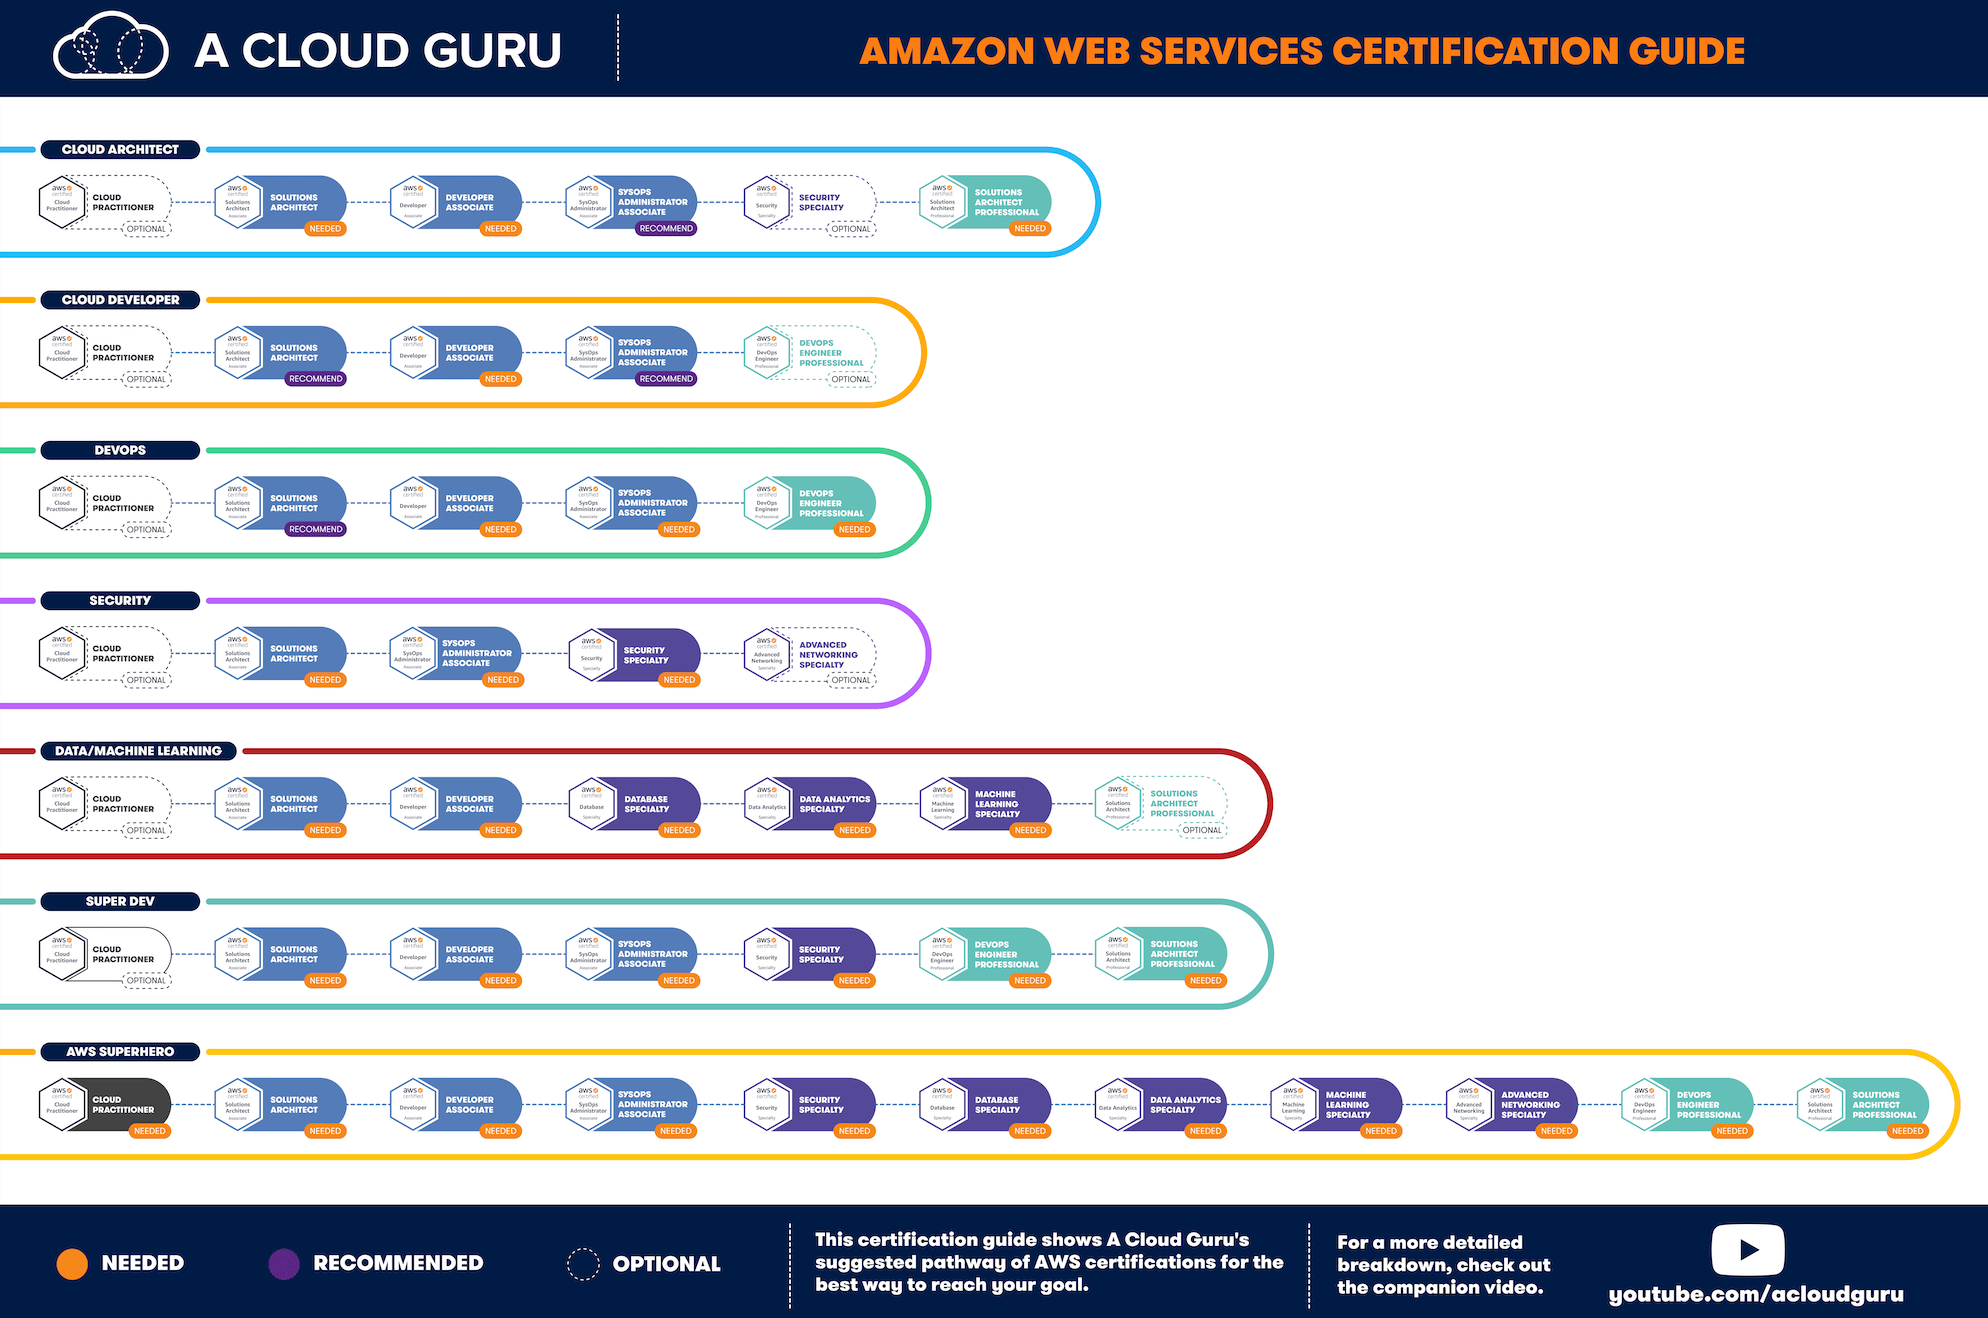 AWS certification path